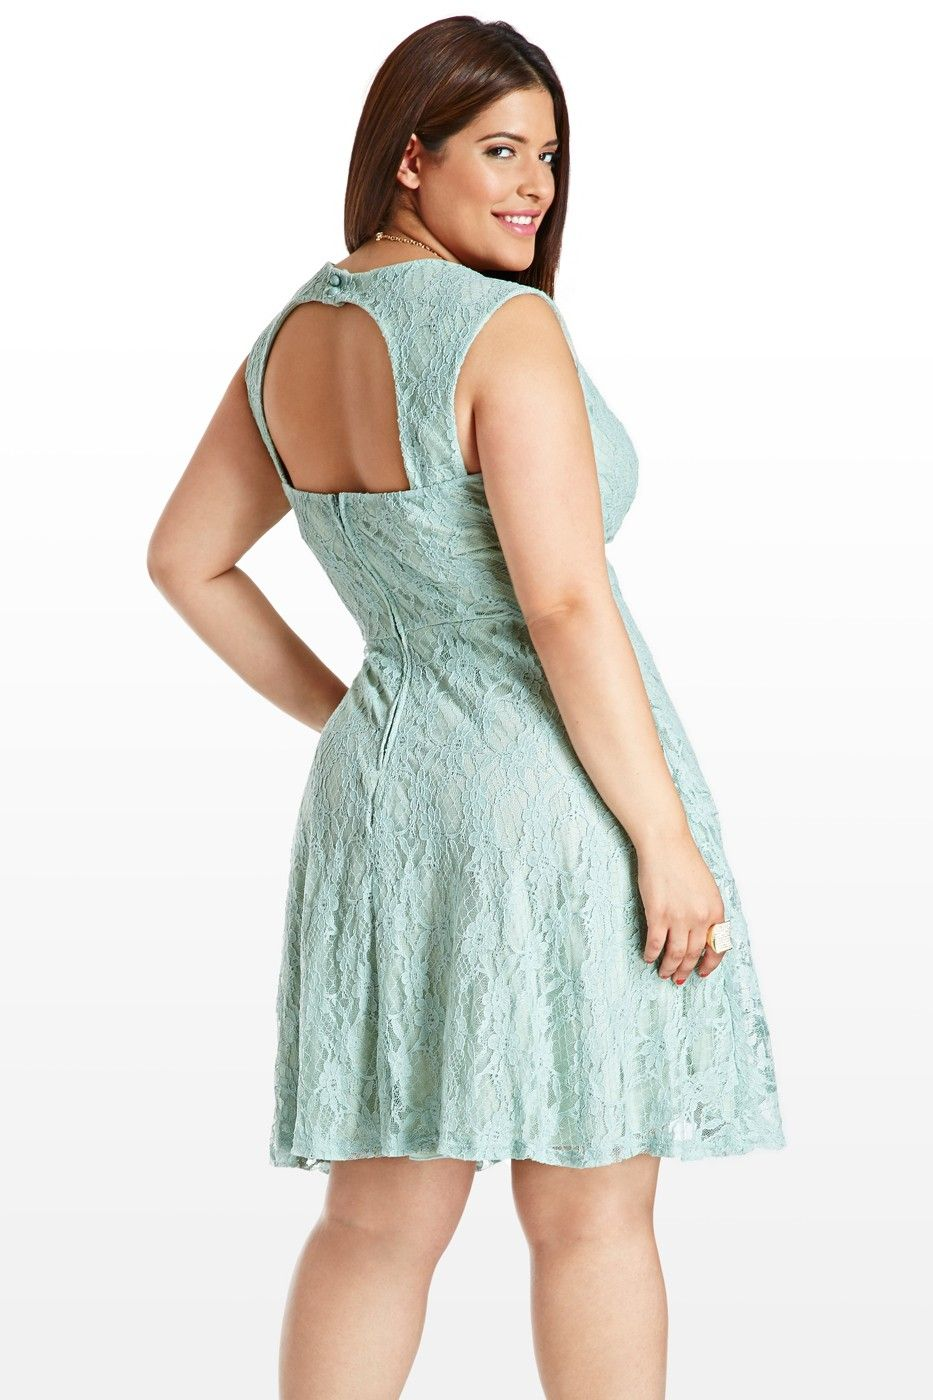 carpe diem lace dress, love that its modest with the flirty back